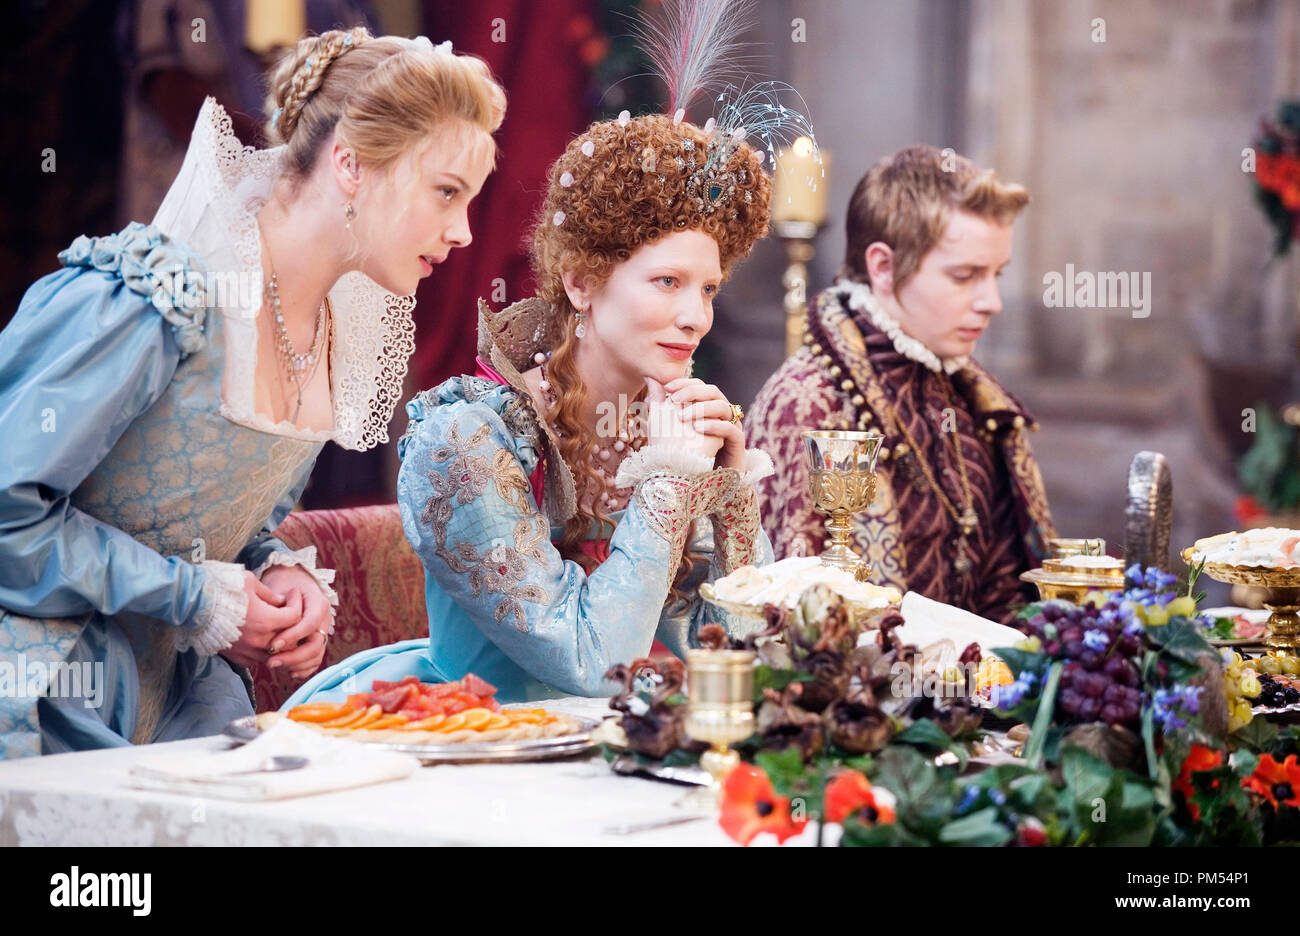 'Elizabeth: The Golden Age'  Cate Blanchett, Abbie Cornish, Christian Brassington  © 2007 Universal Pictures - Stock Image